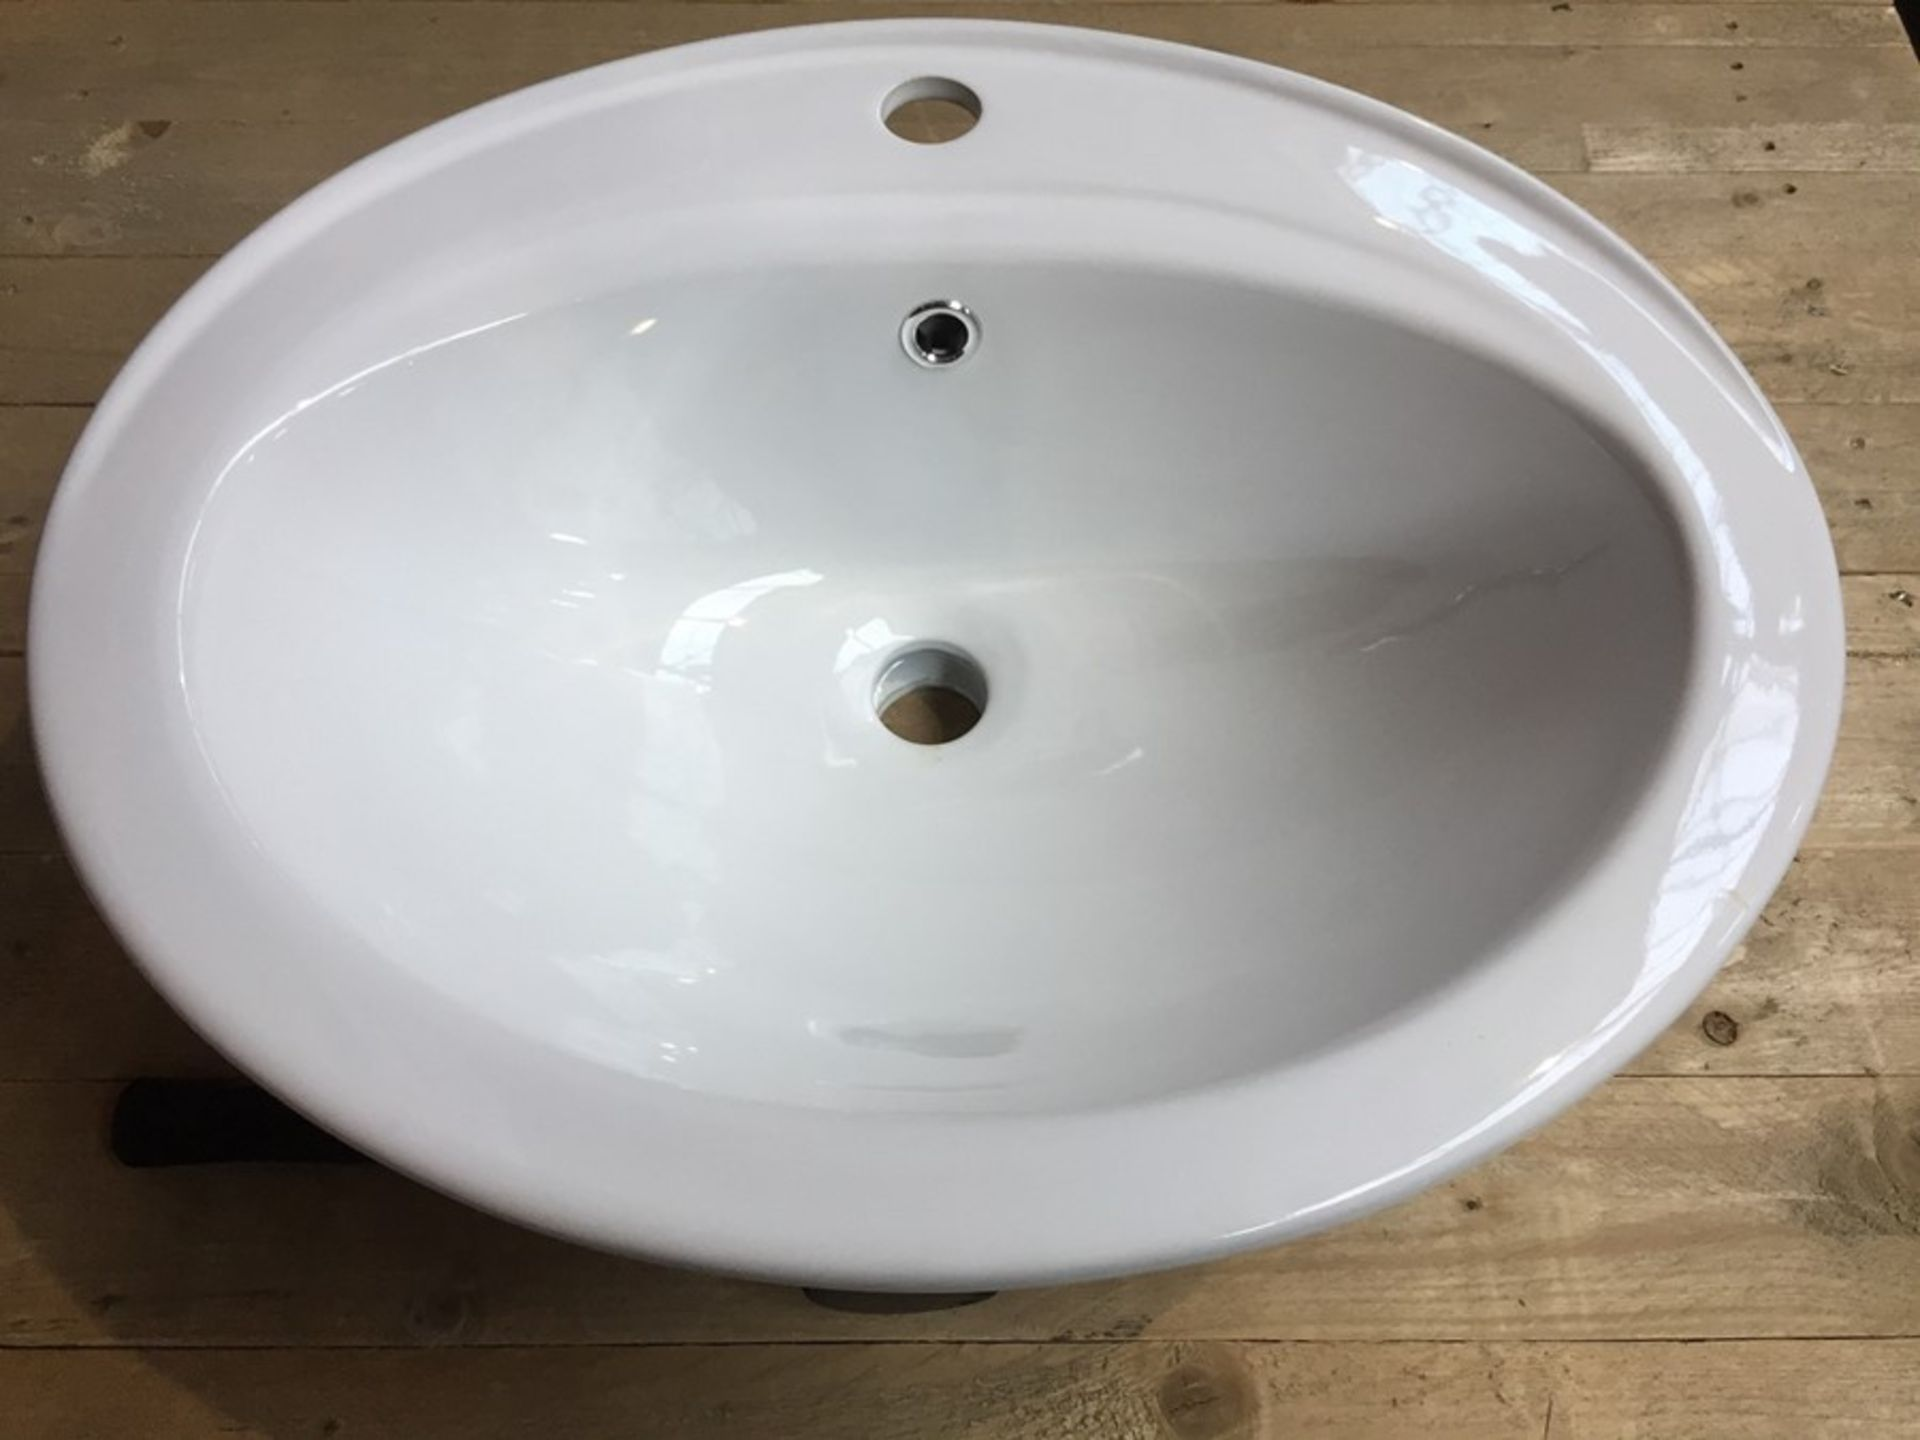 Lot 50 - 1 AS NEW BOXED OVAL INSET CERAMIC BASIN ONE TAP HOLE RRP £129.00 - C825.1